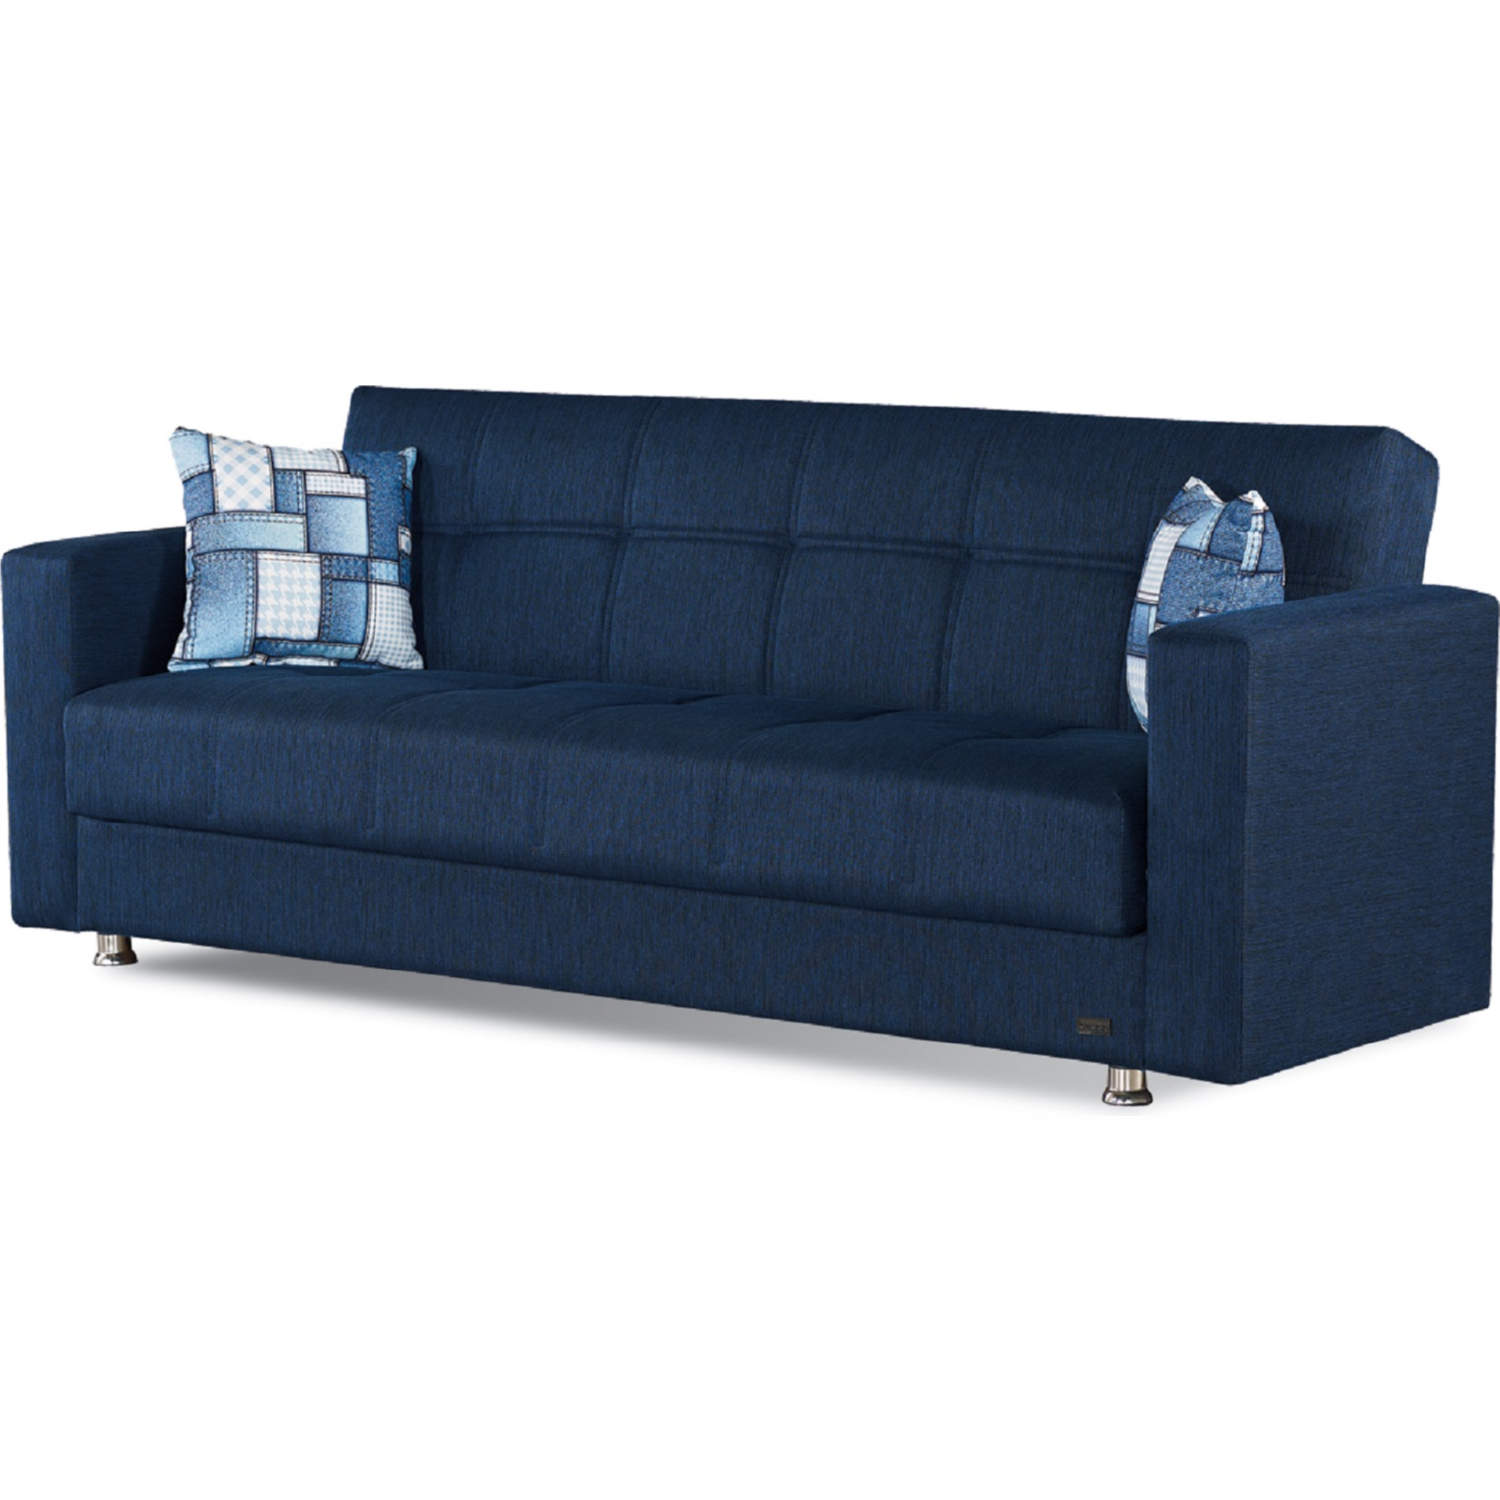 Miami Sleeper Sofa In Navy Blue Fabric By Empire Furniture